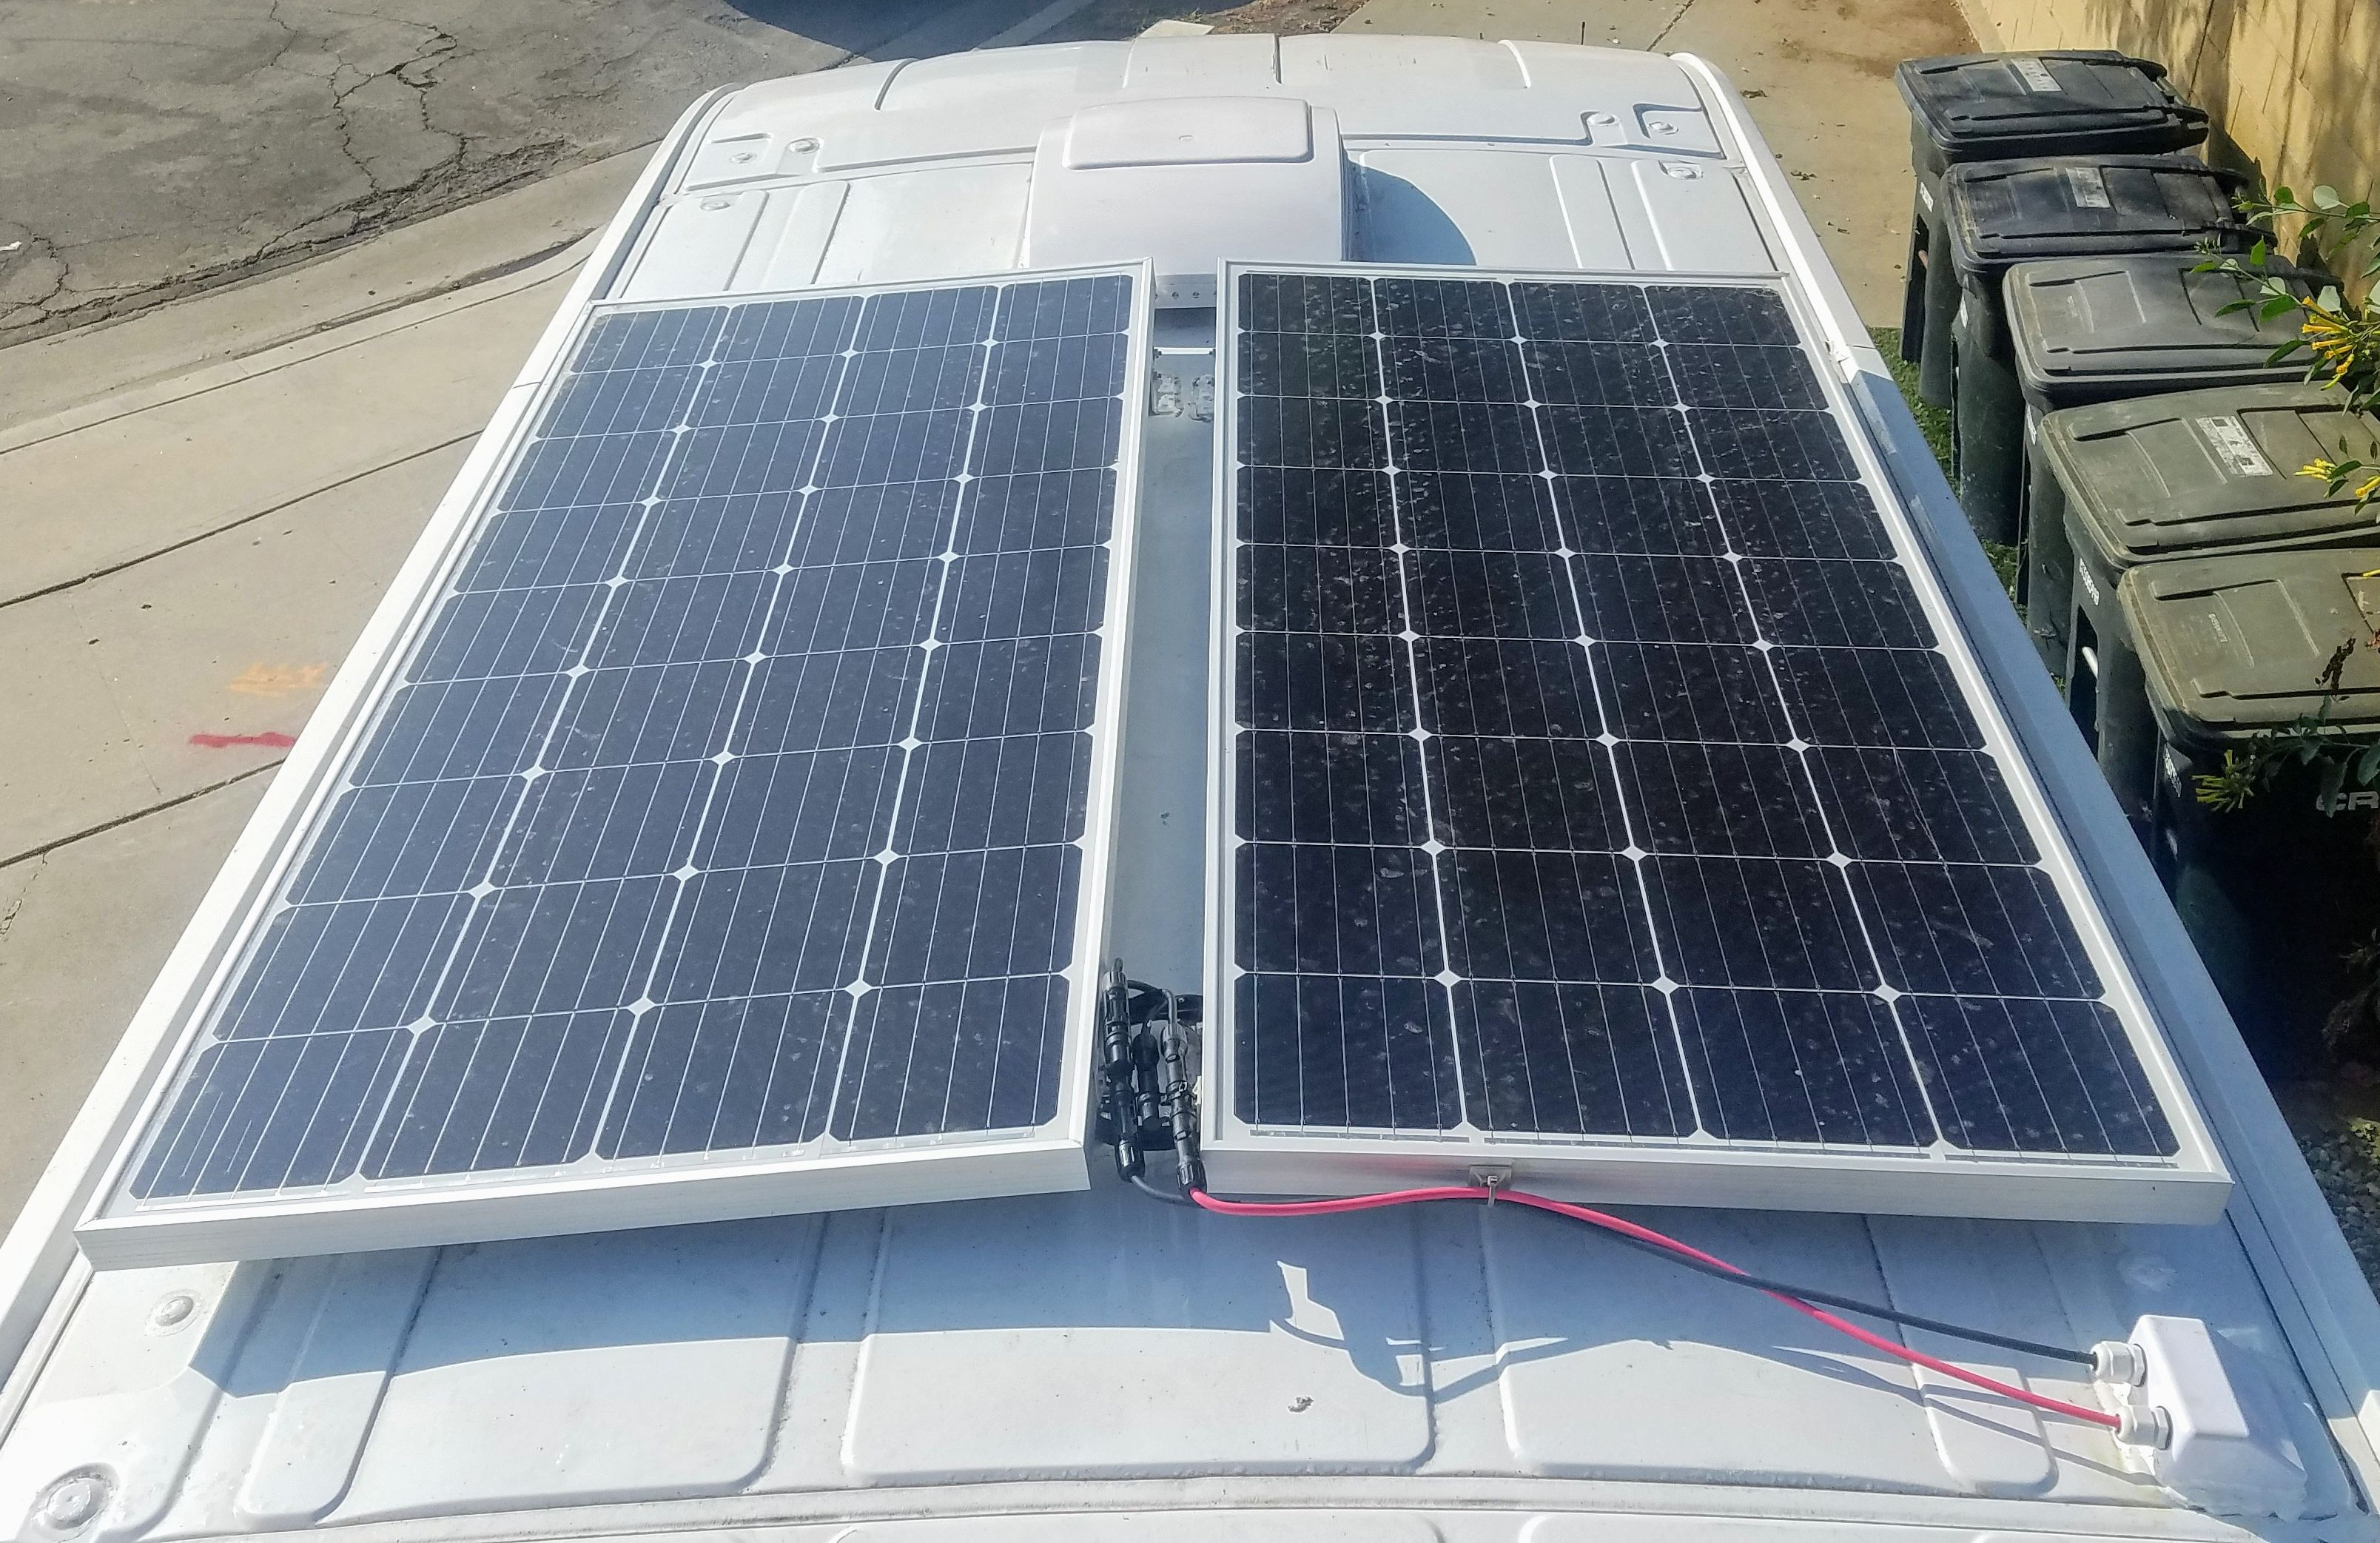 Mounting Affordable Solar Panels On The Camper Van